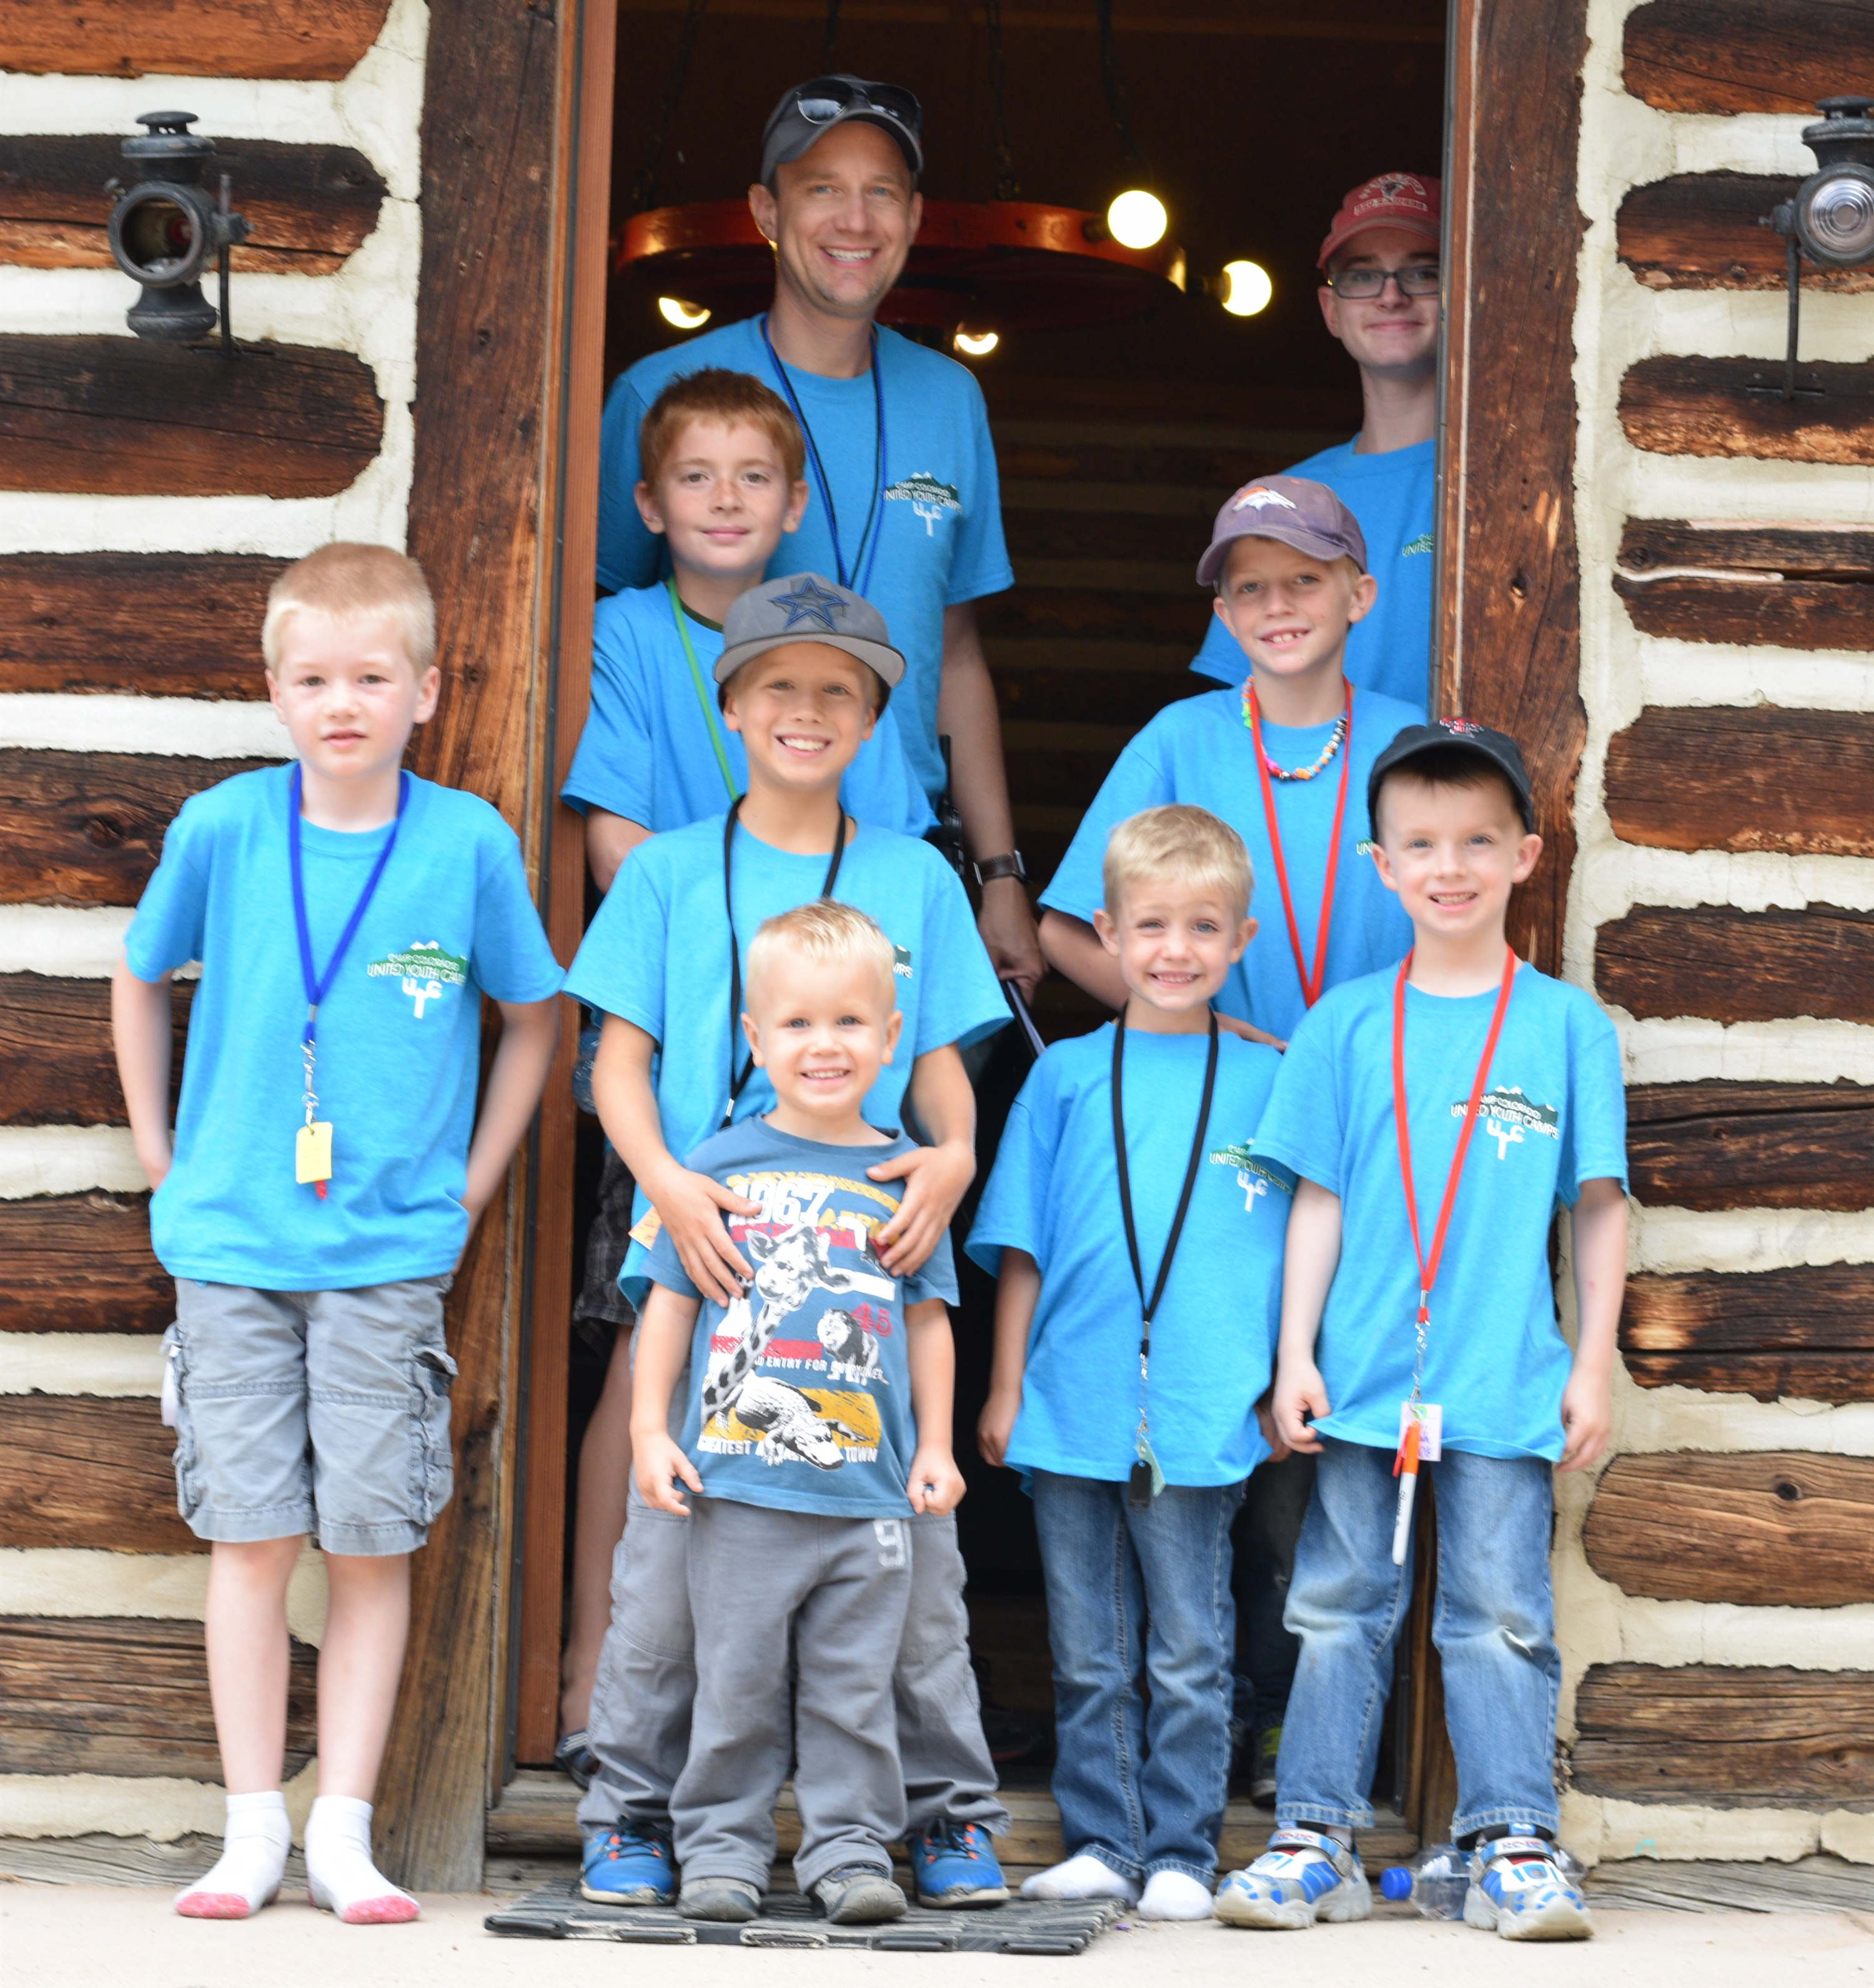 Campers and staff enjoying Preteen Camp Colorado.